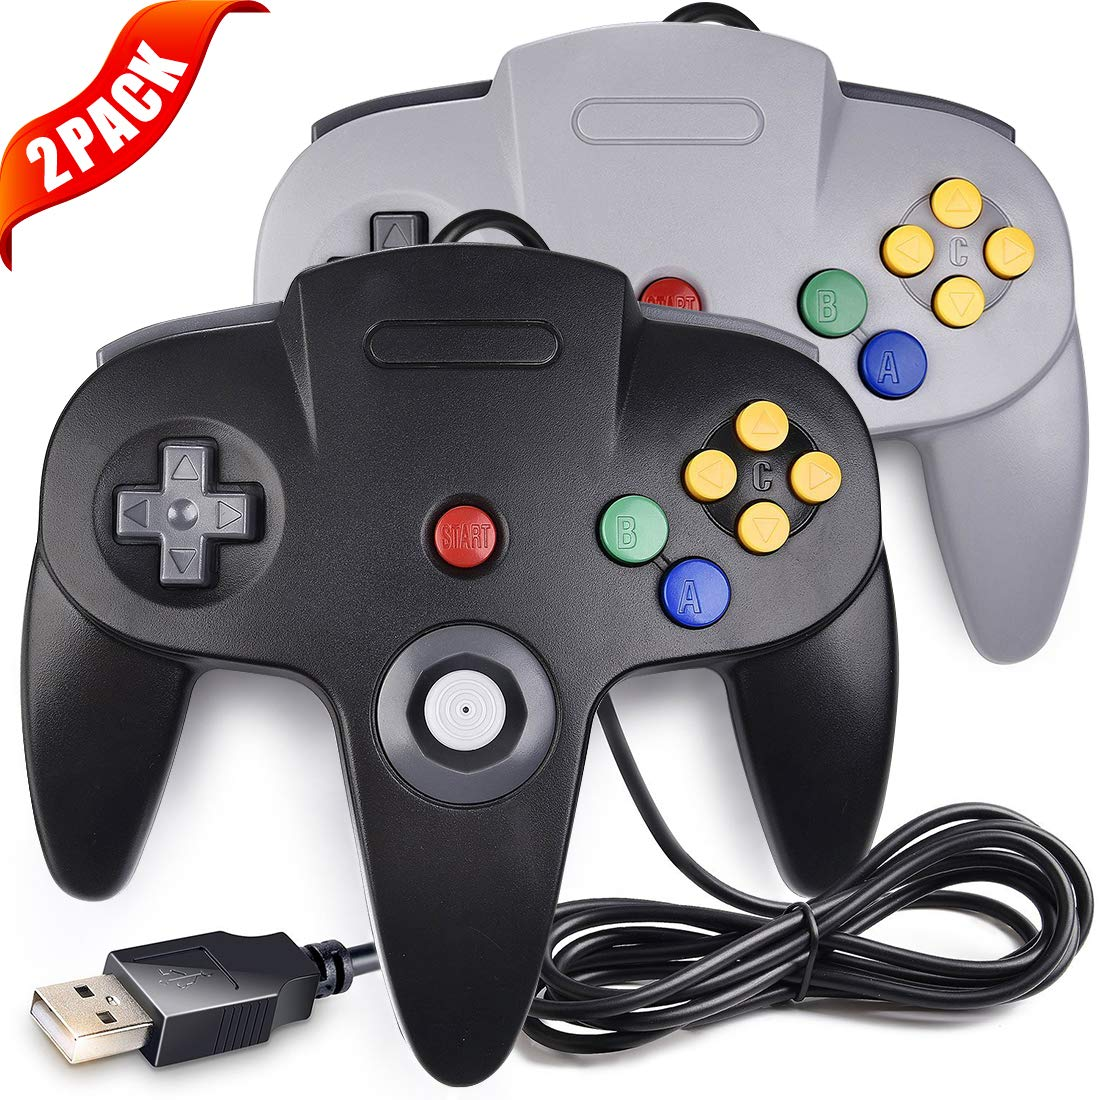 2 Pack LUXMO Upgraded N64 USB Controllers,Classic